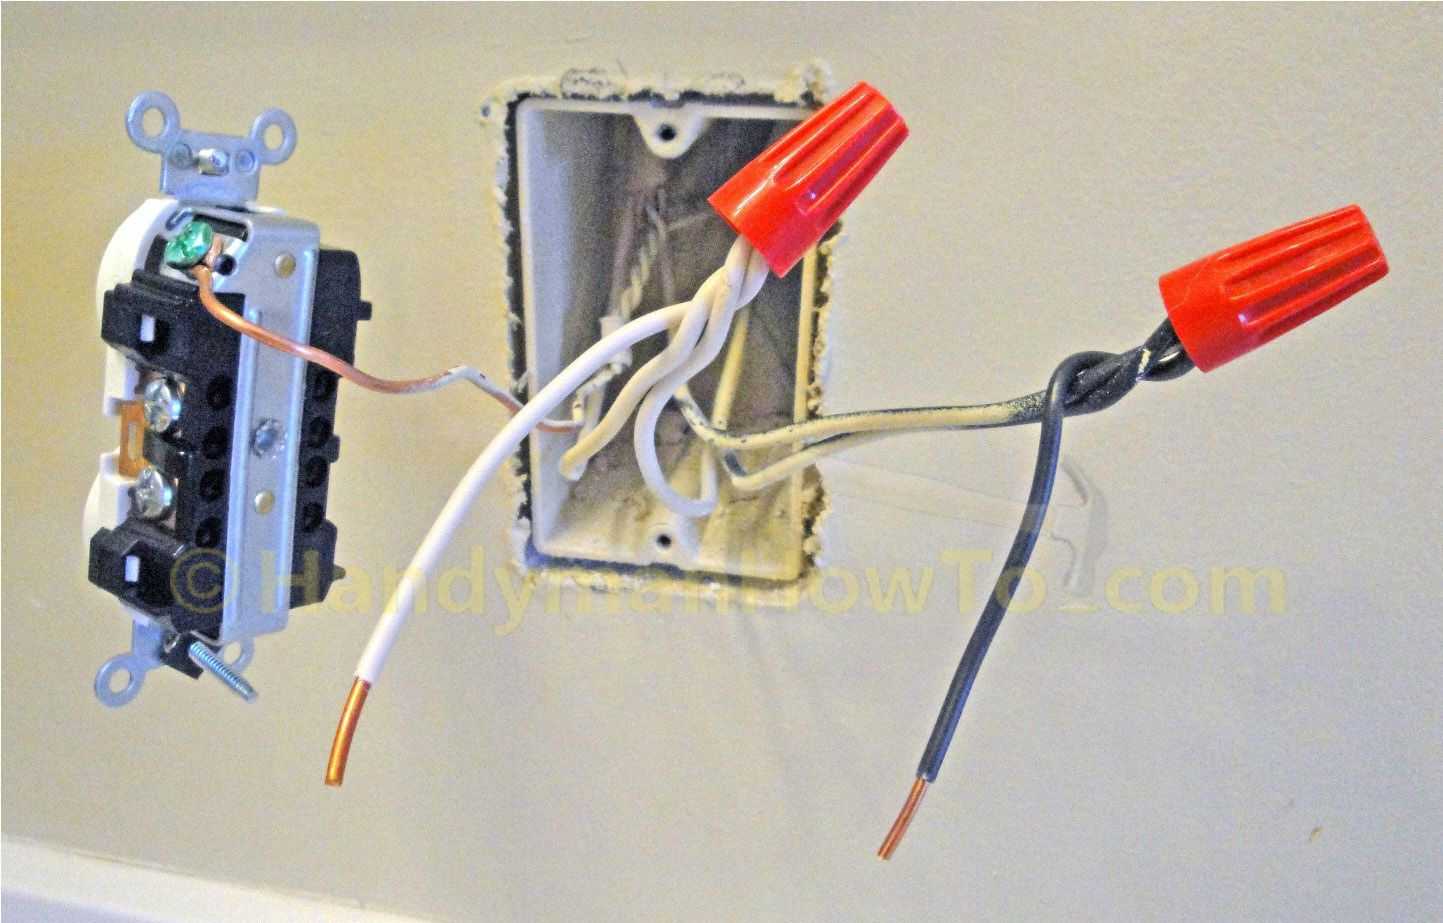 eb27a8c4cf82653085b1e6b3e2eb6f6a backwiring an electrical outlet in parallel with pigtail pigtail wiring diagram at bakdesigns.co